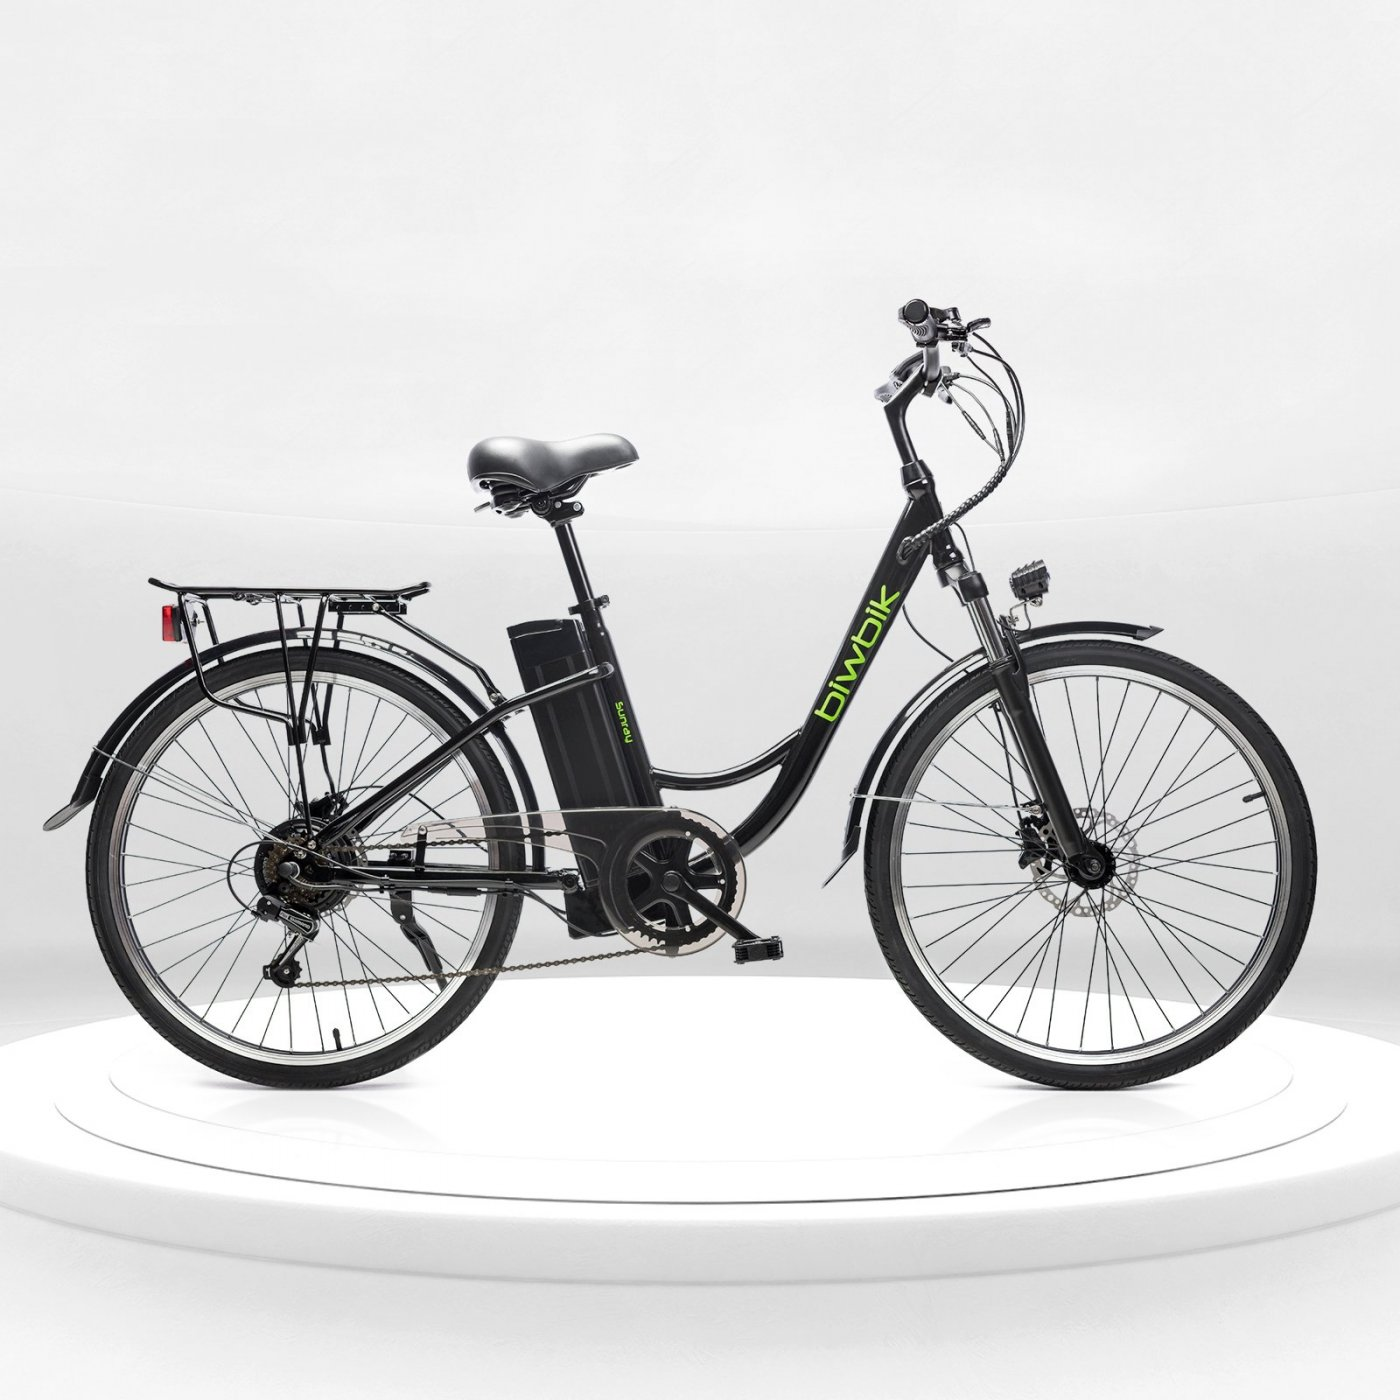 Biwbik Sunray black electric touring bike